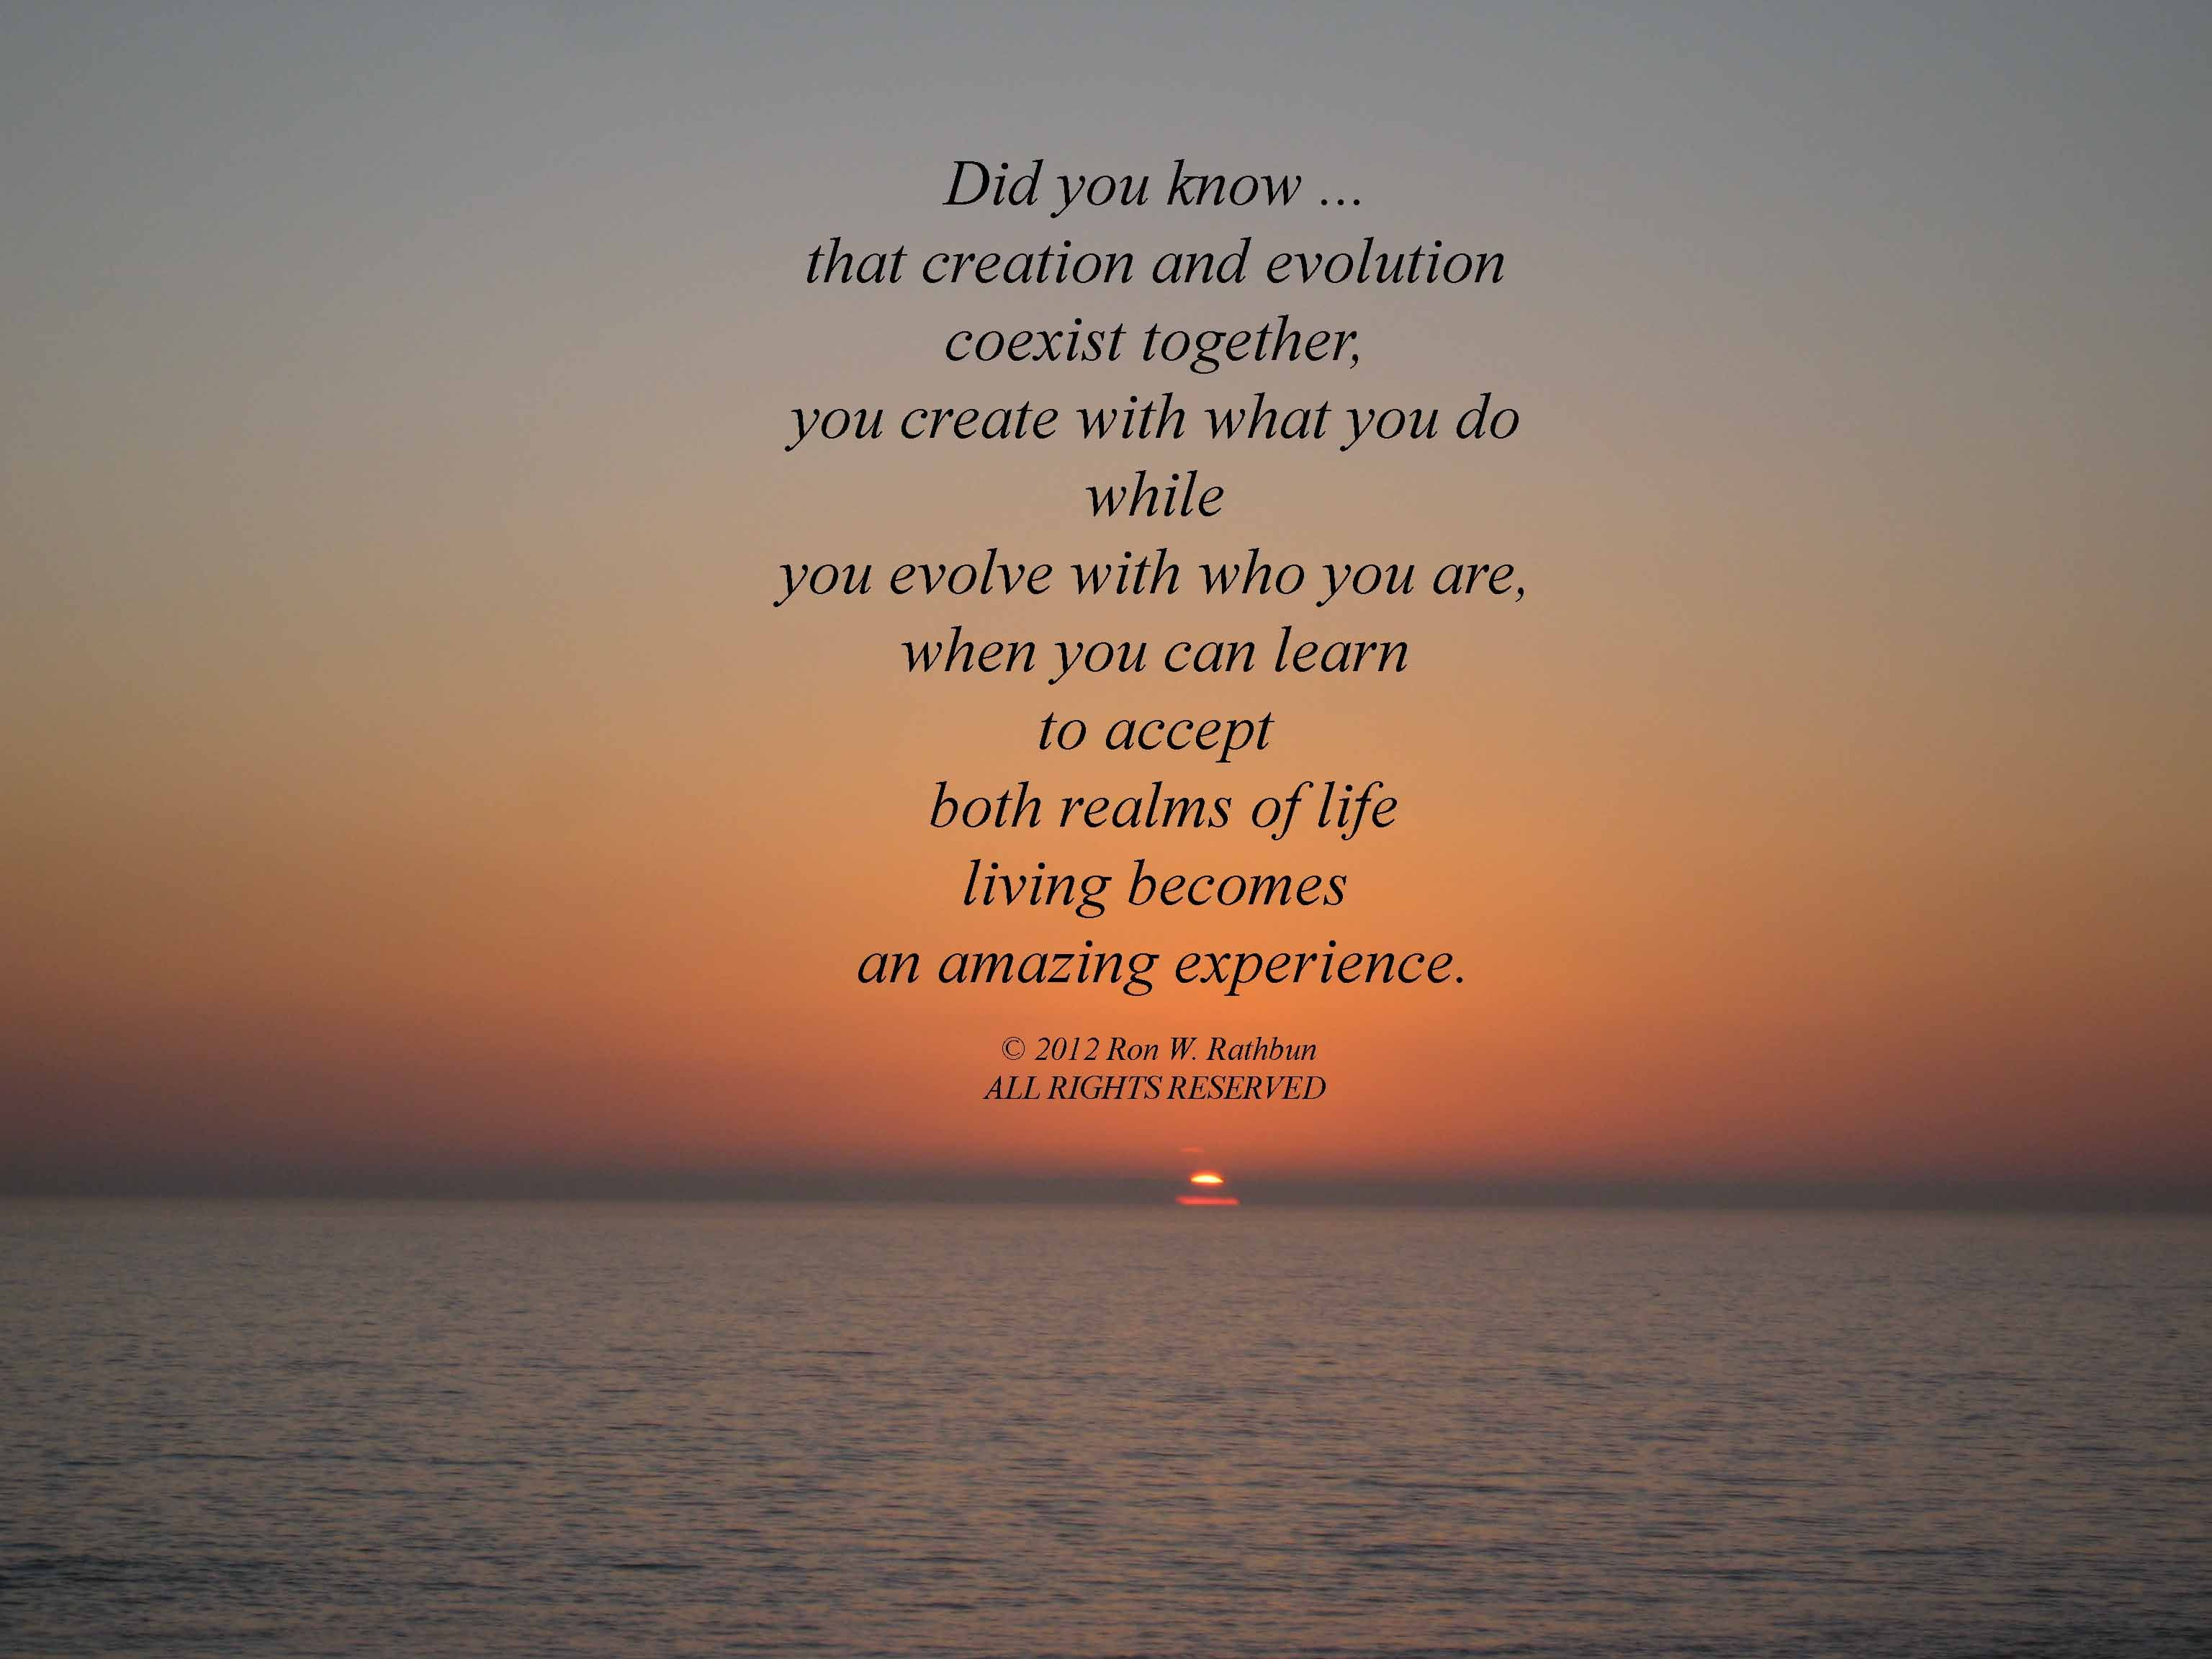 Reflection Quotes About Life The Quote Was From The Mind And Self_Reflectiondescription From